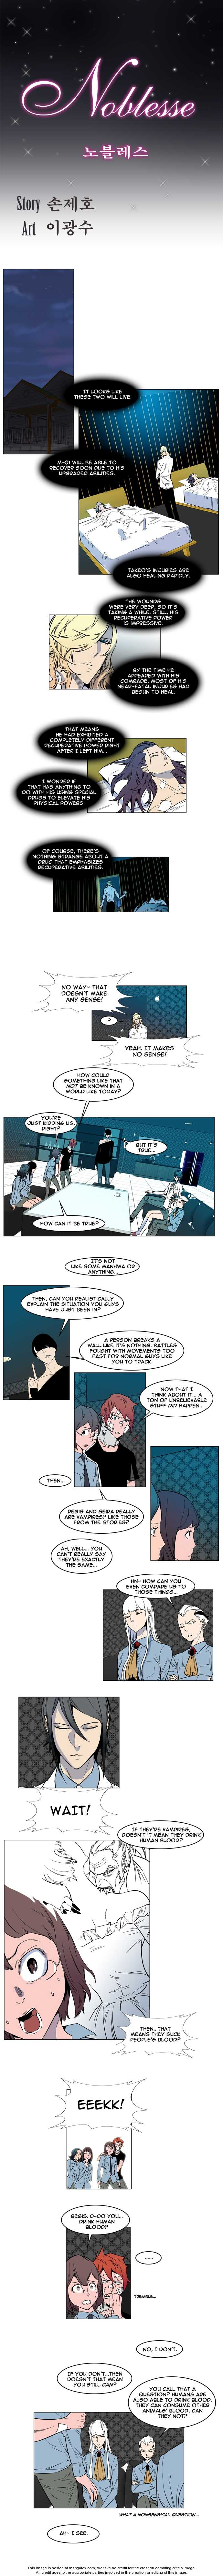 Noblesse 138 Page 1